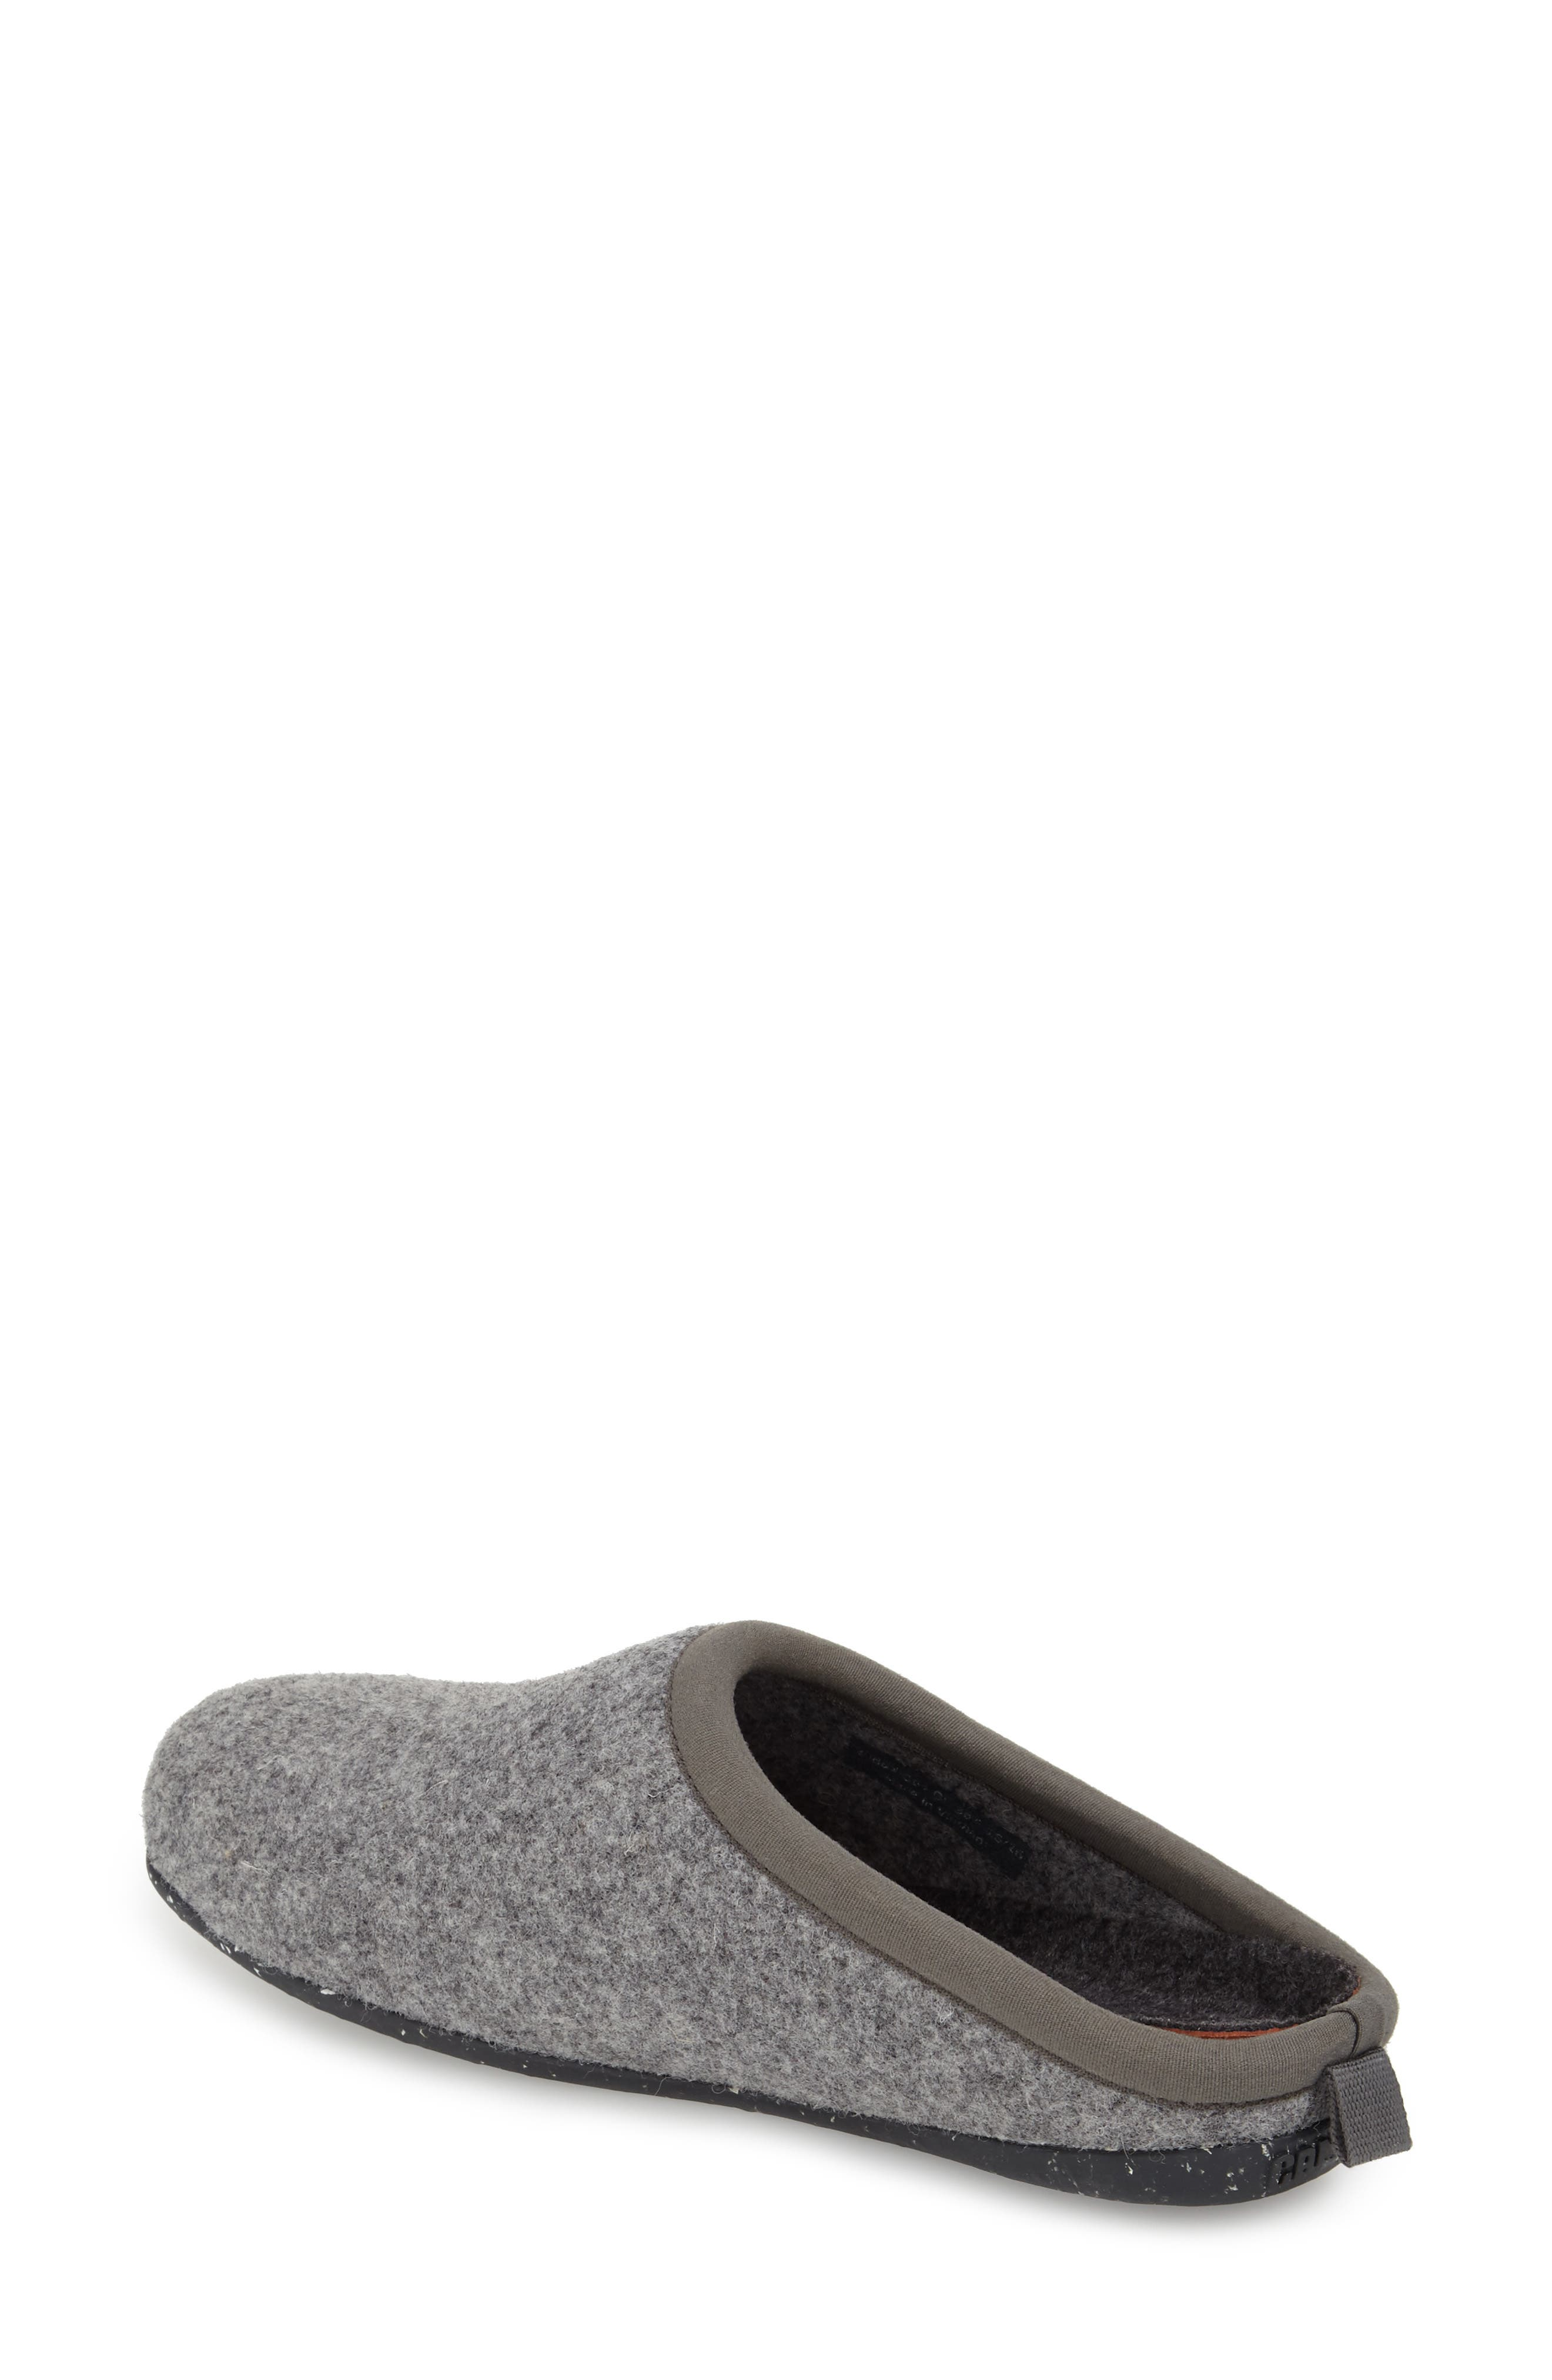 'Wabi' Slipper,                             Alternate thumbnail 2, color,                             Dark Gray Wool